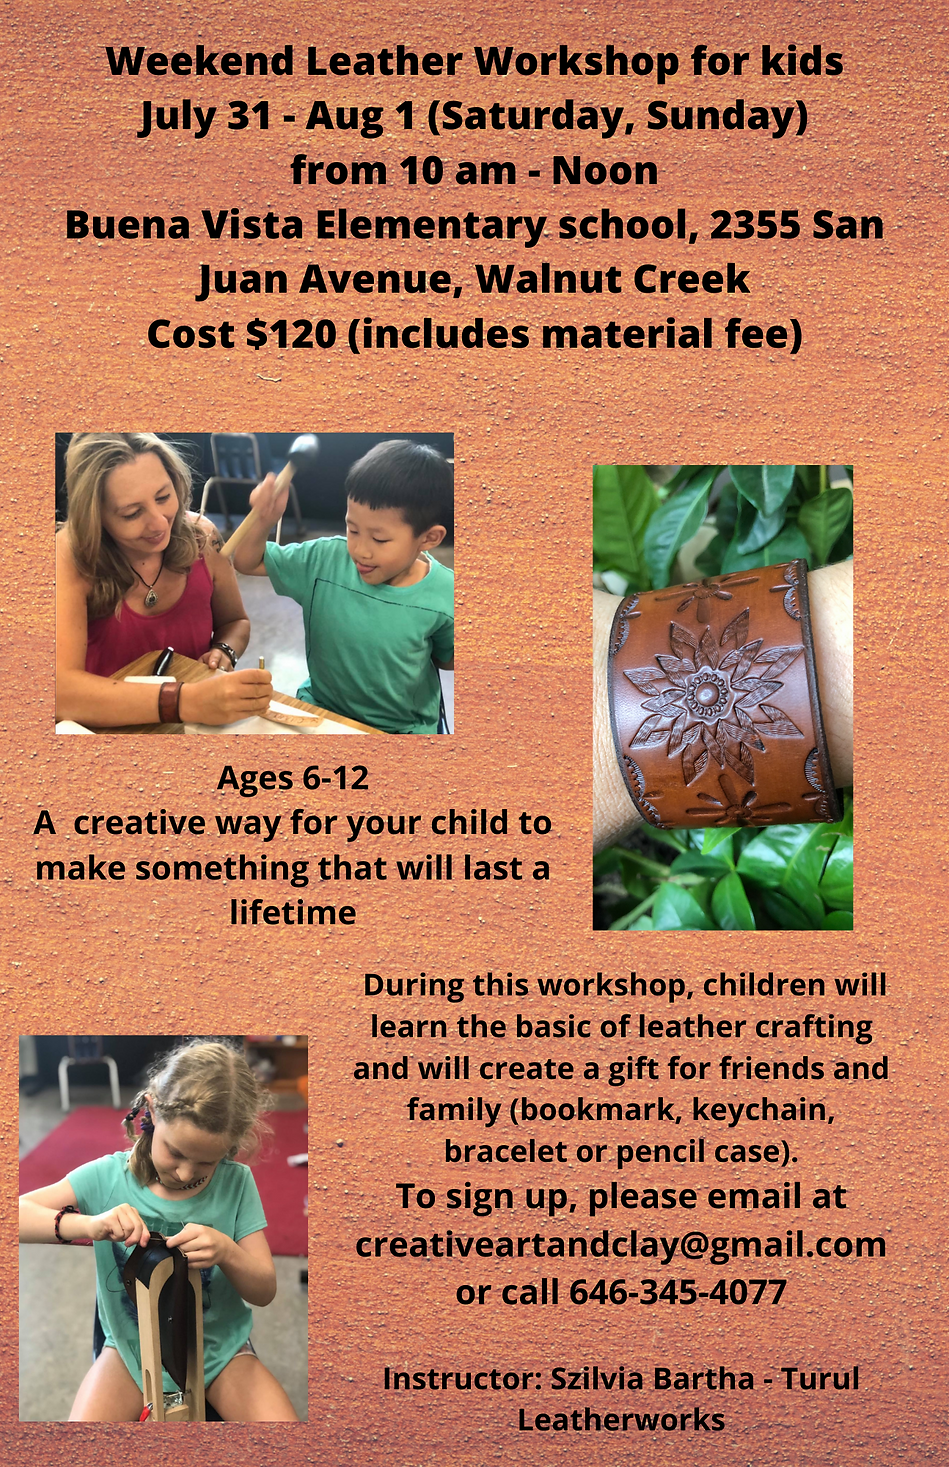 Weekend Leather Workshop for kids.png